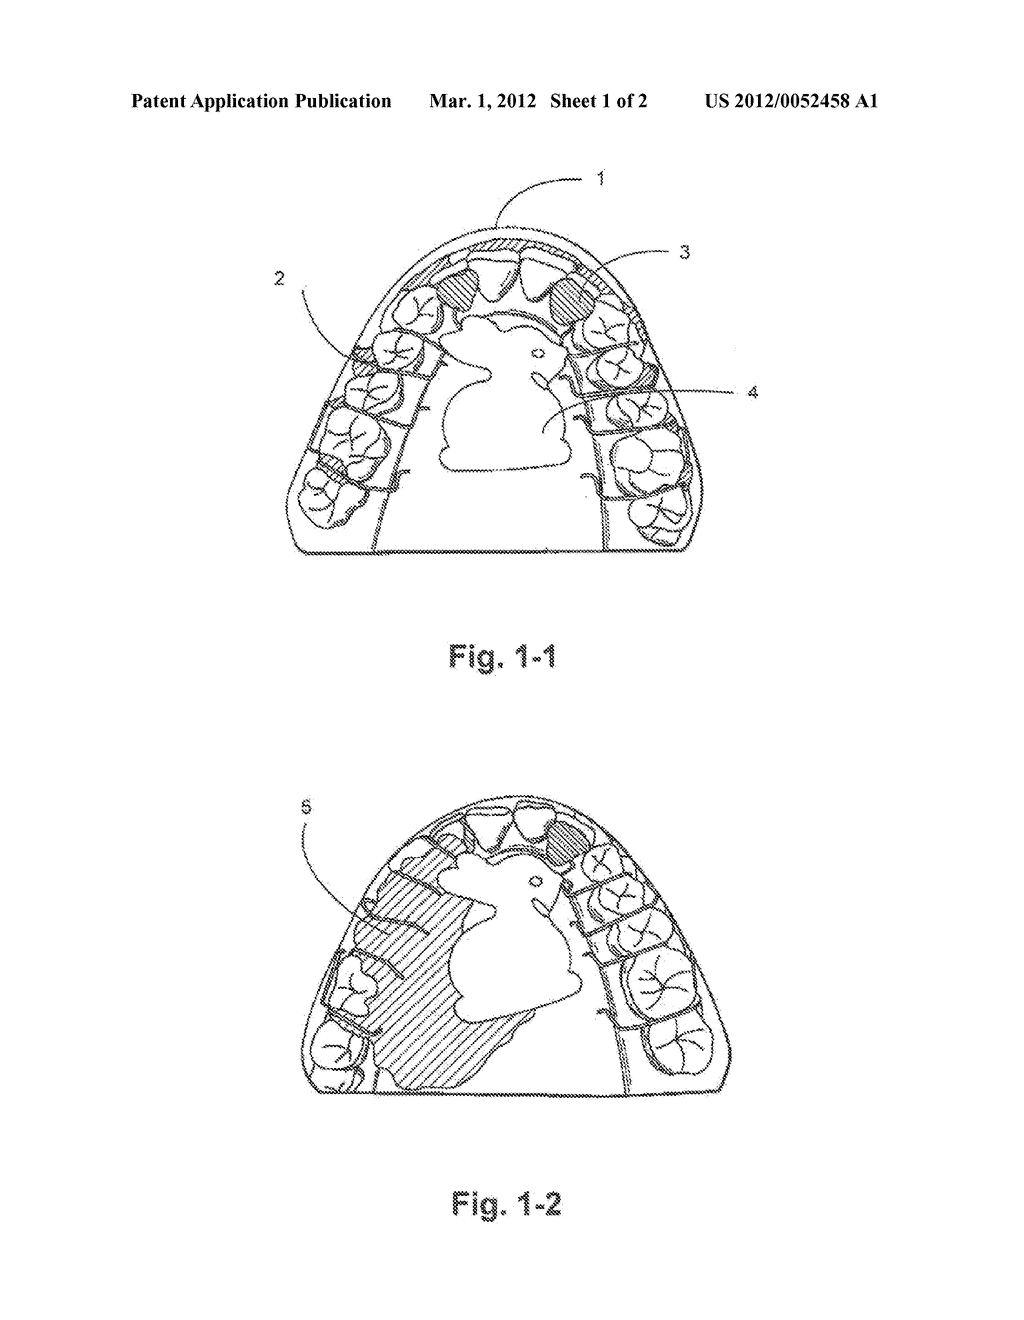 hight resolution of removable orthodontic or orthopedic appliance with inlaid design piece and the method of construction diagram